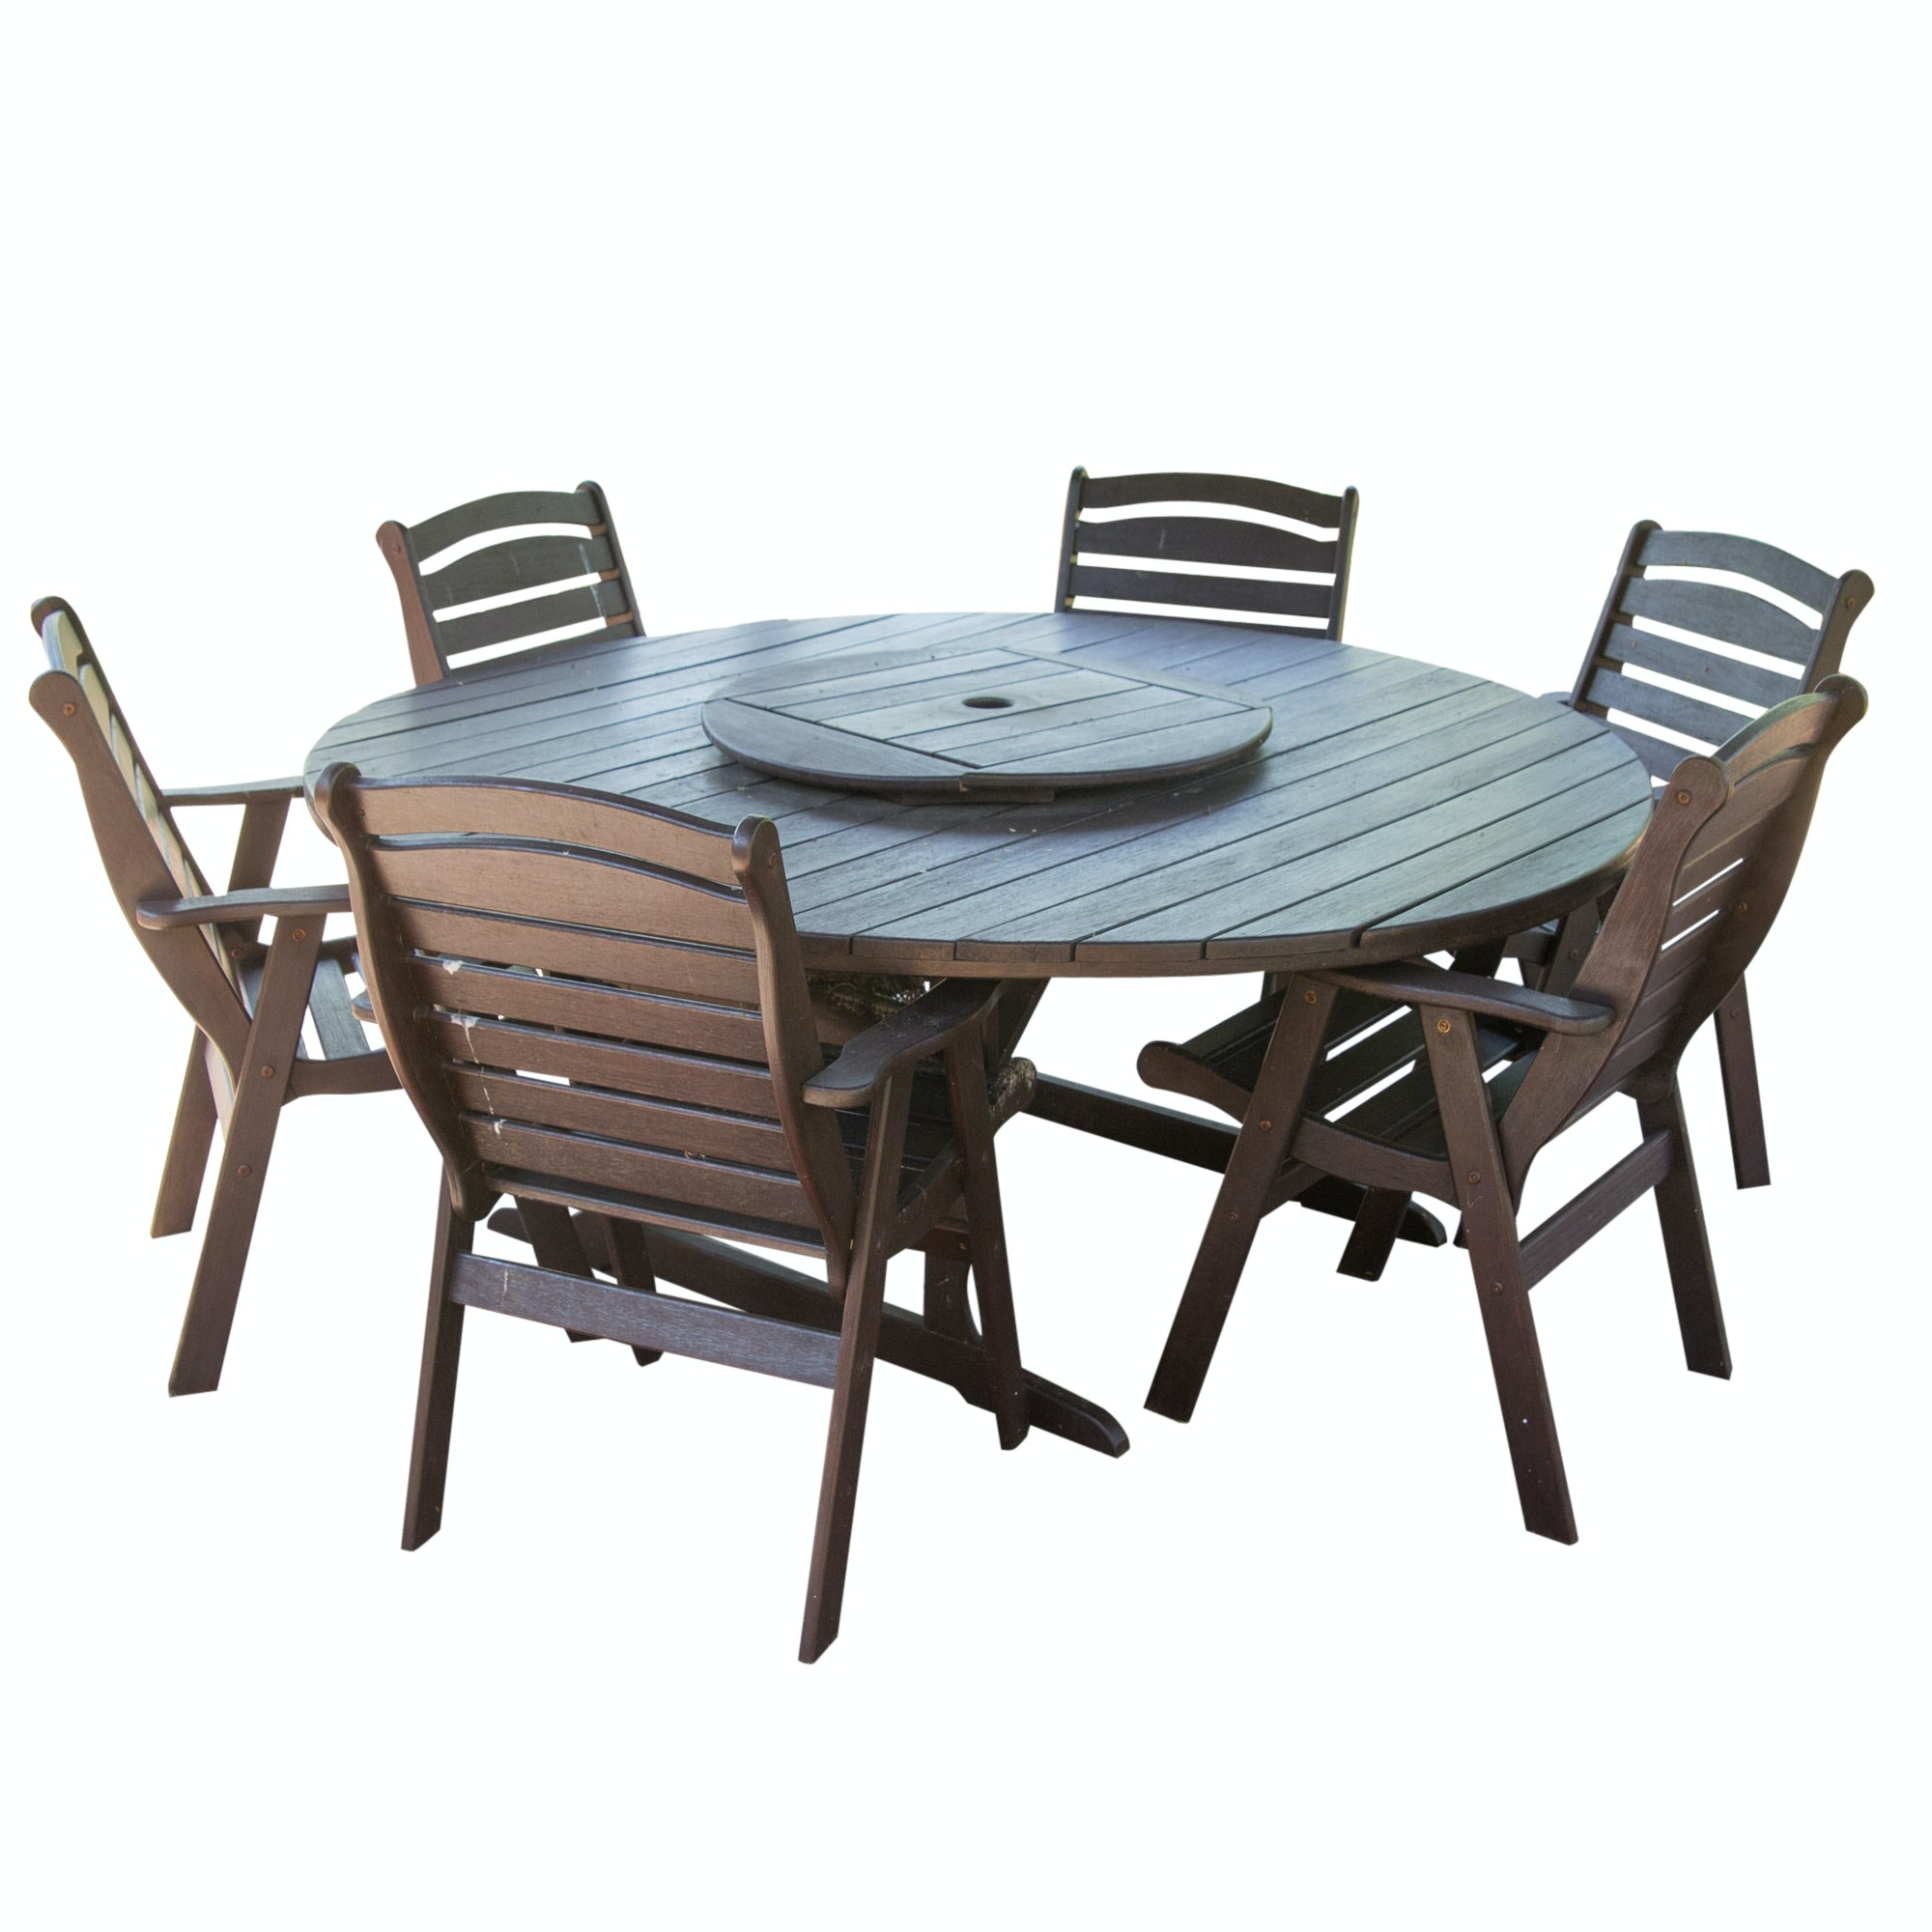 Jensen Jarrah Patio Furniture Droughtrelief Org